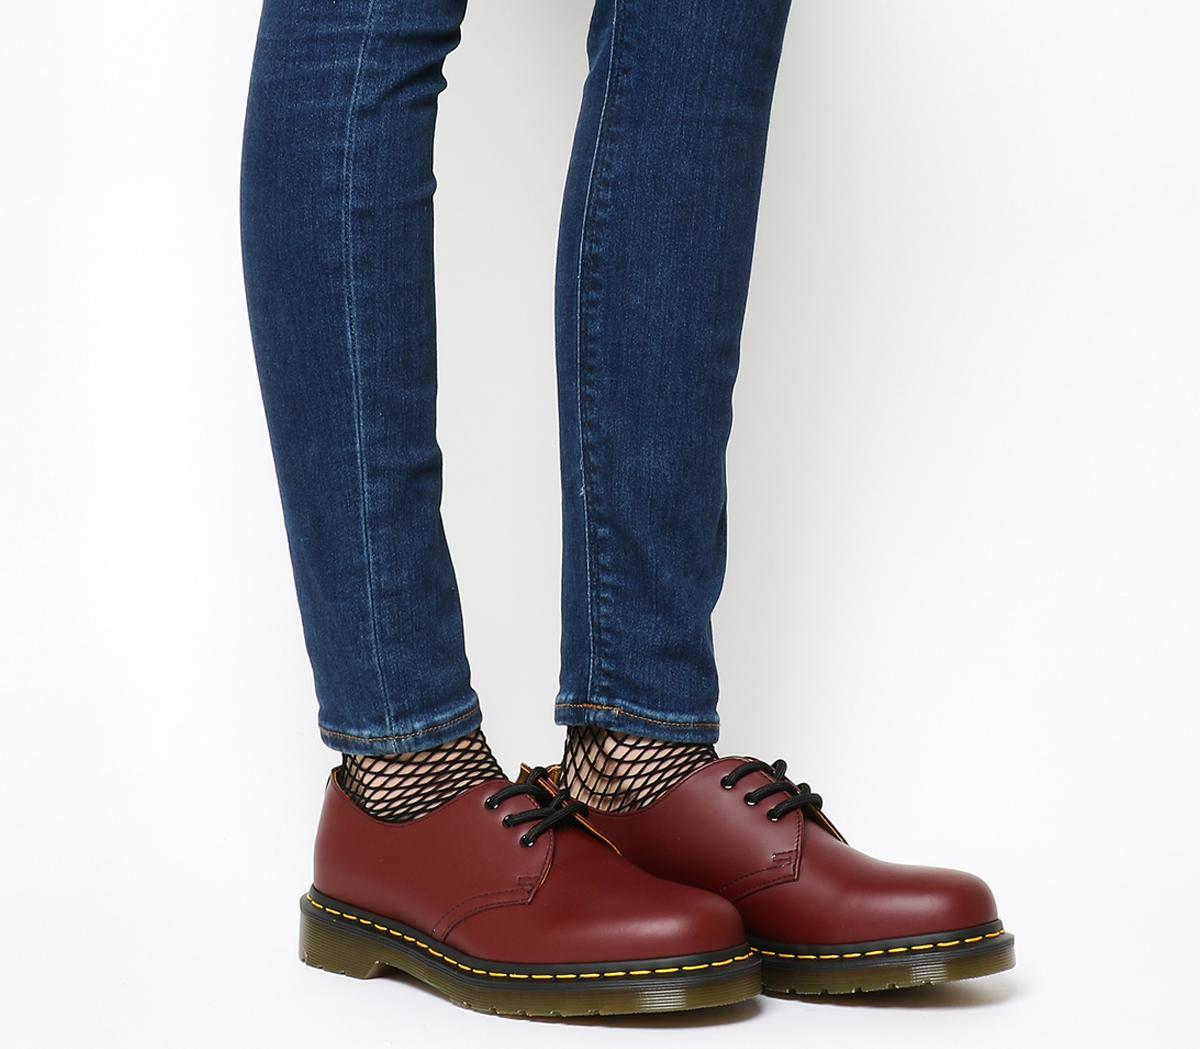 Dr. Martens 3 Eyelet Shoes Cherry Red